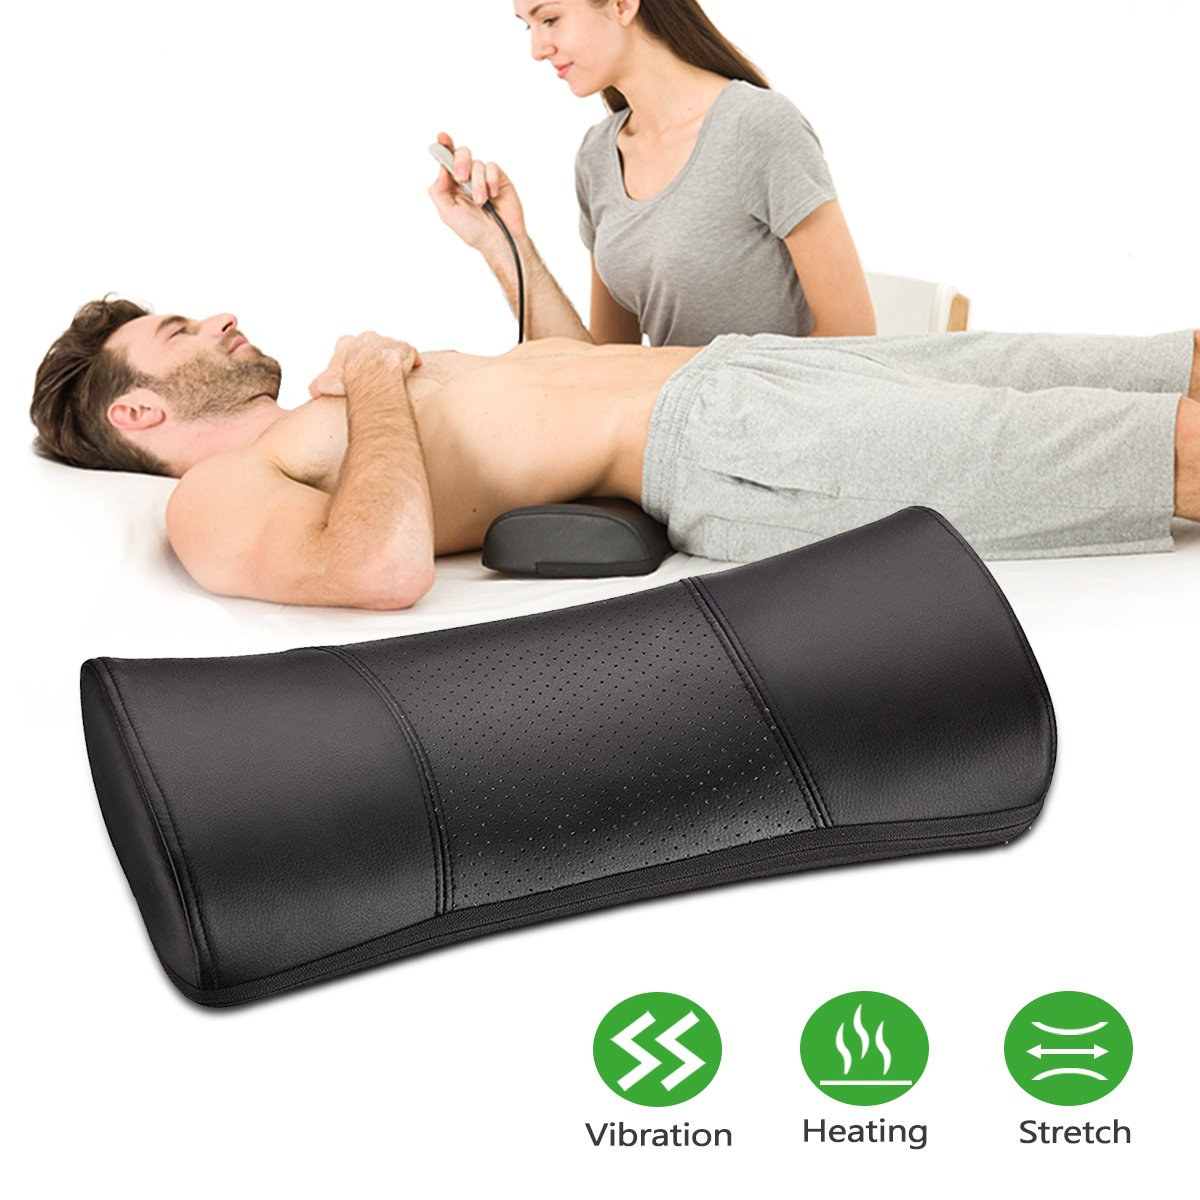 Lower Back Massager with Heating and Vibration Function, Lumbar Stretching Device, Muscle Tension and Lower Back Pain Relief, PU Leather, Black